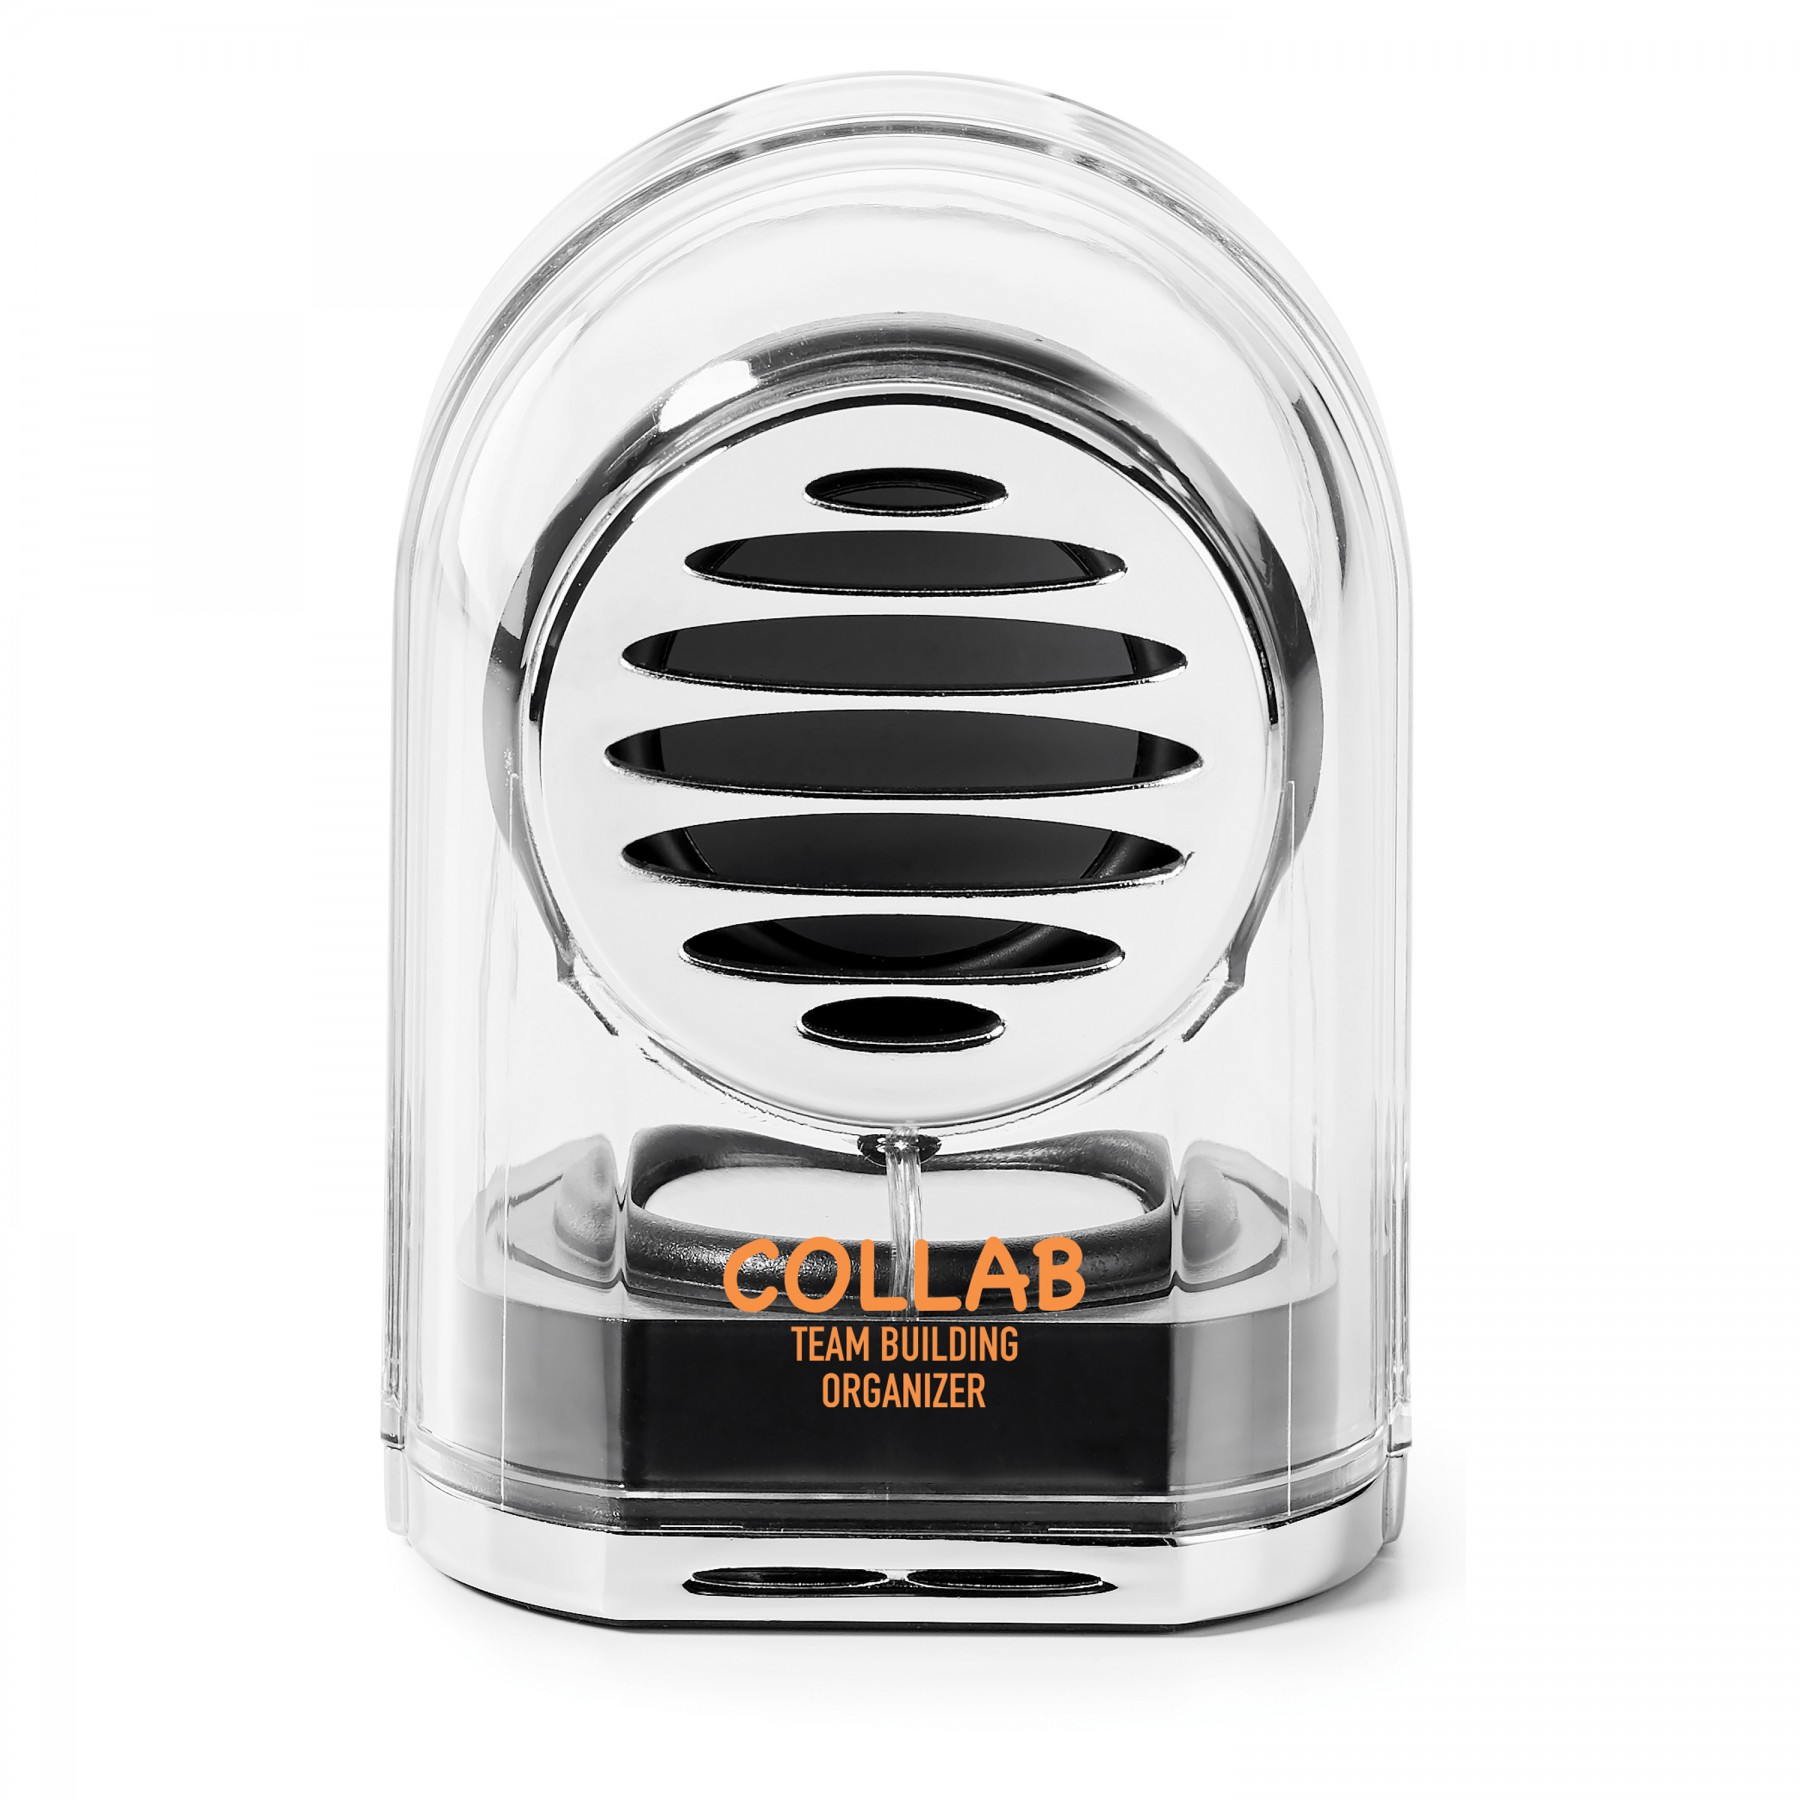 Etta Wireless Mono Speaker (1 Speaker), T223, One Colour Imprint